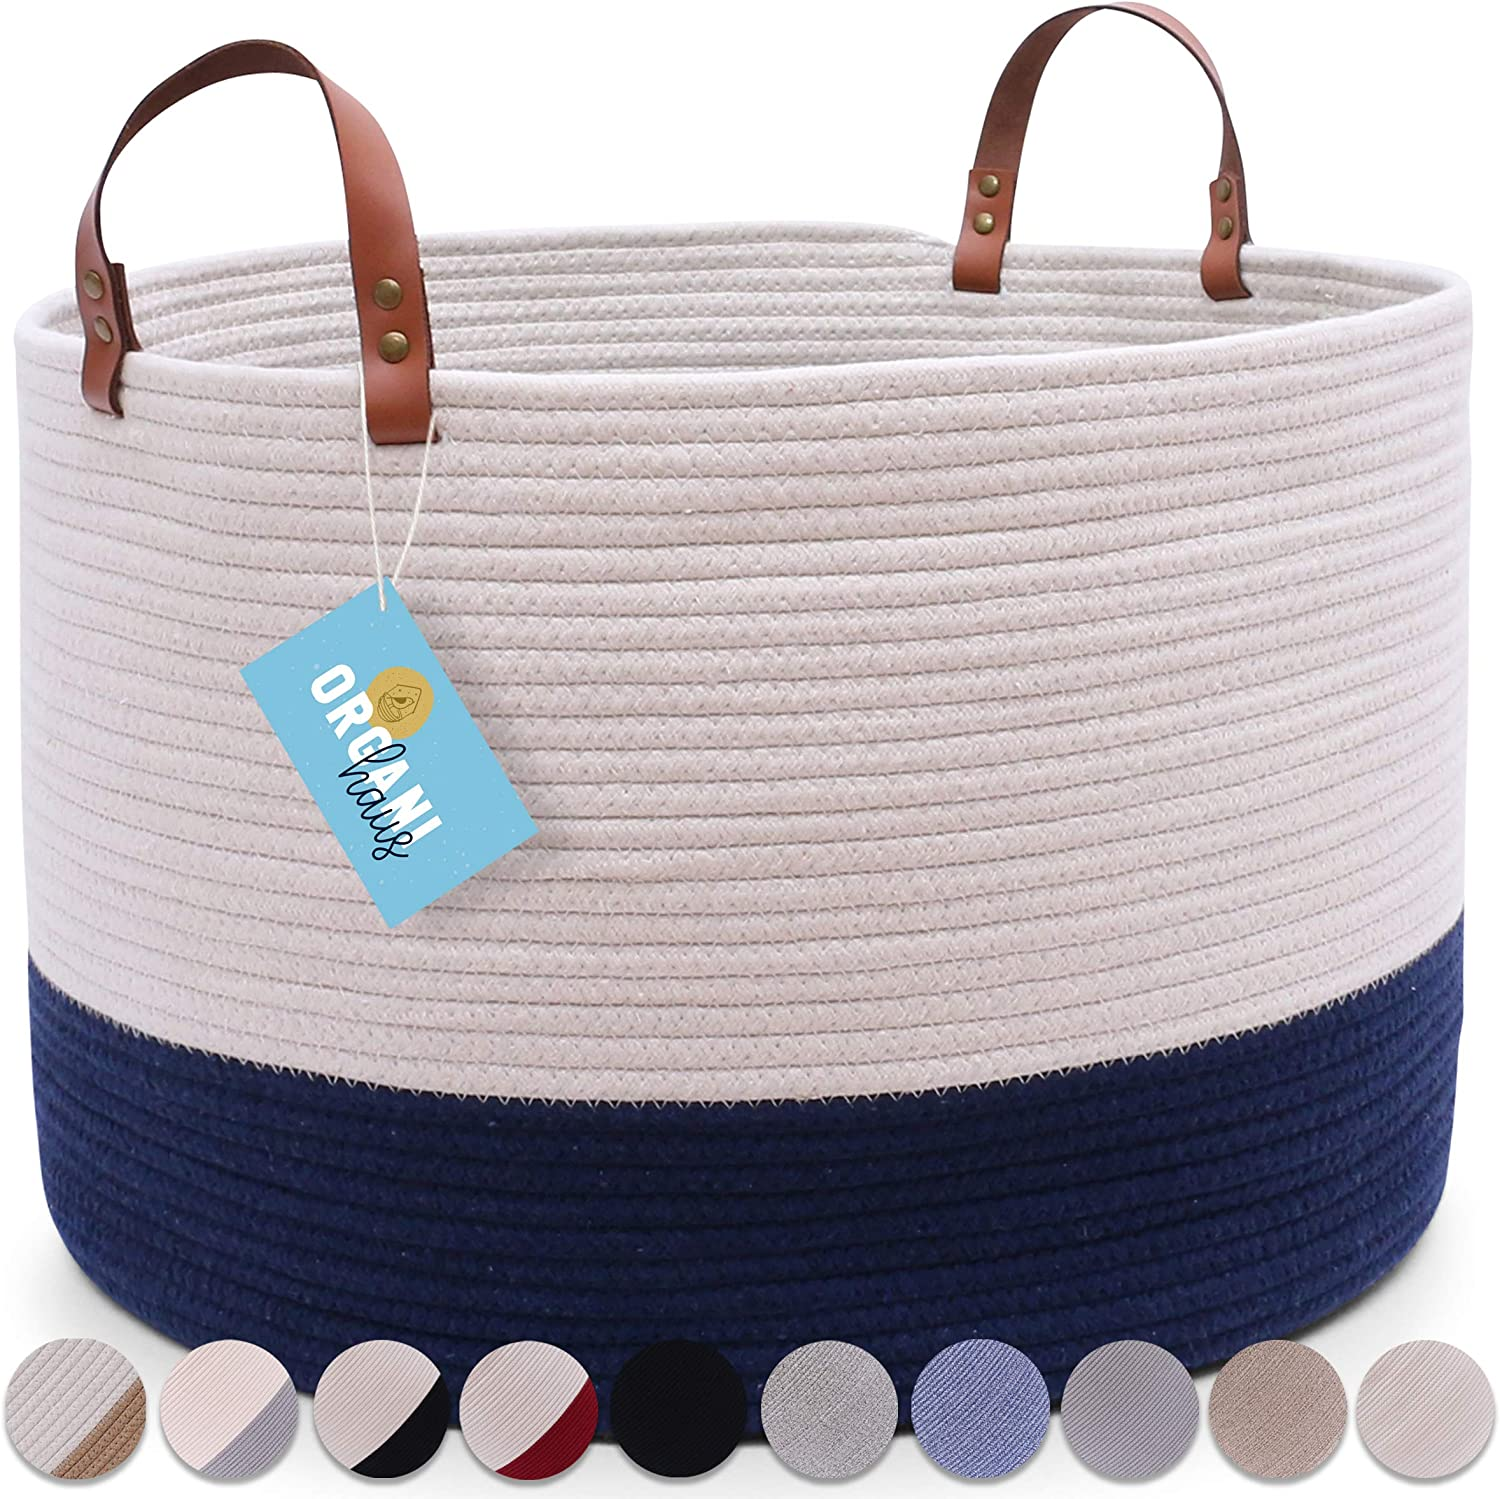 """OrganiHaus XXL Cotton Rope Basket with Real Leather Handles   Wide 20""""x13""""   Large Decorative Basket with Genuine Leather Handles   Nautical Basket for Living Room (Off White/Navy Blue)"""